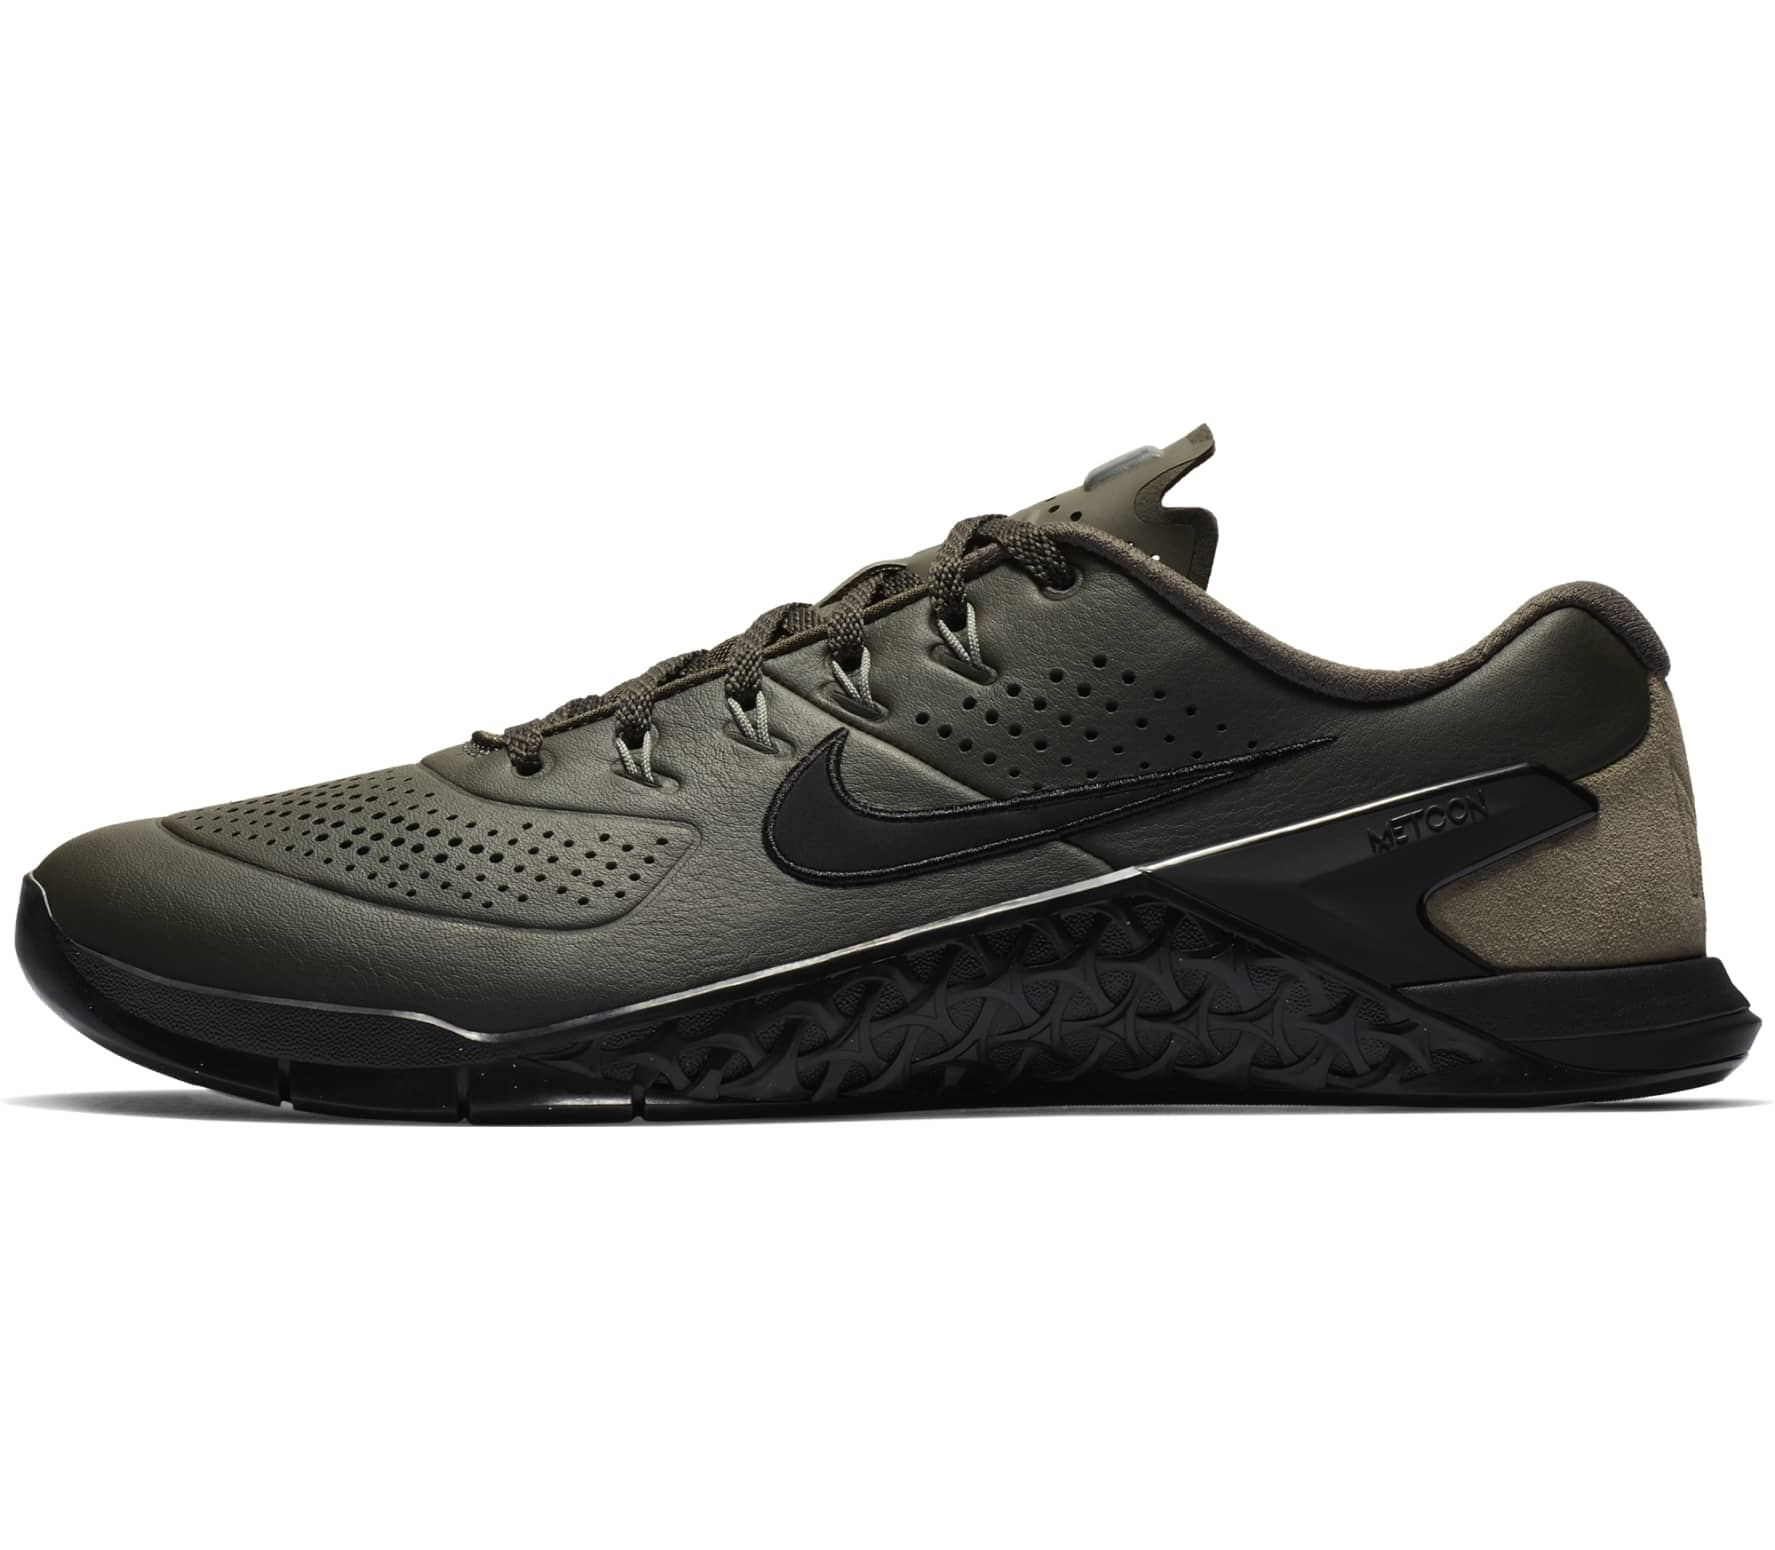 innovative design d0bec 8cd7a Nike - Metcon 4 AMP Leather men's training shoes (black) - buy it at ...